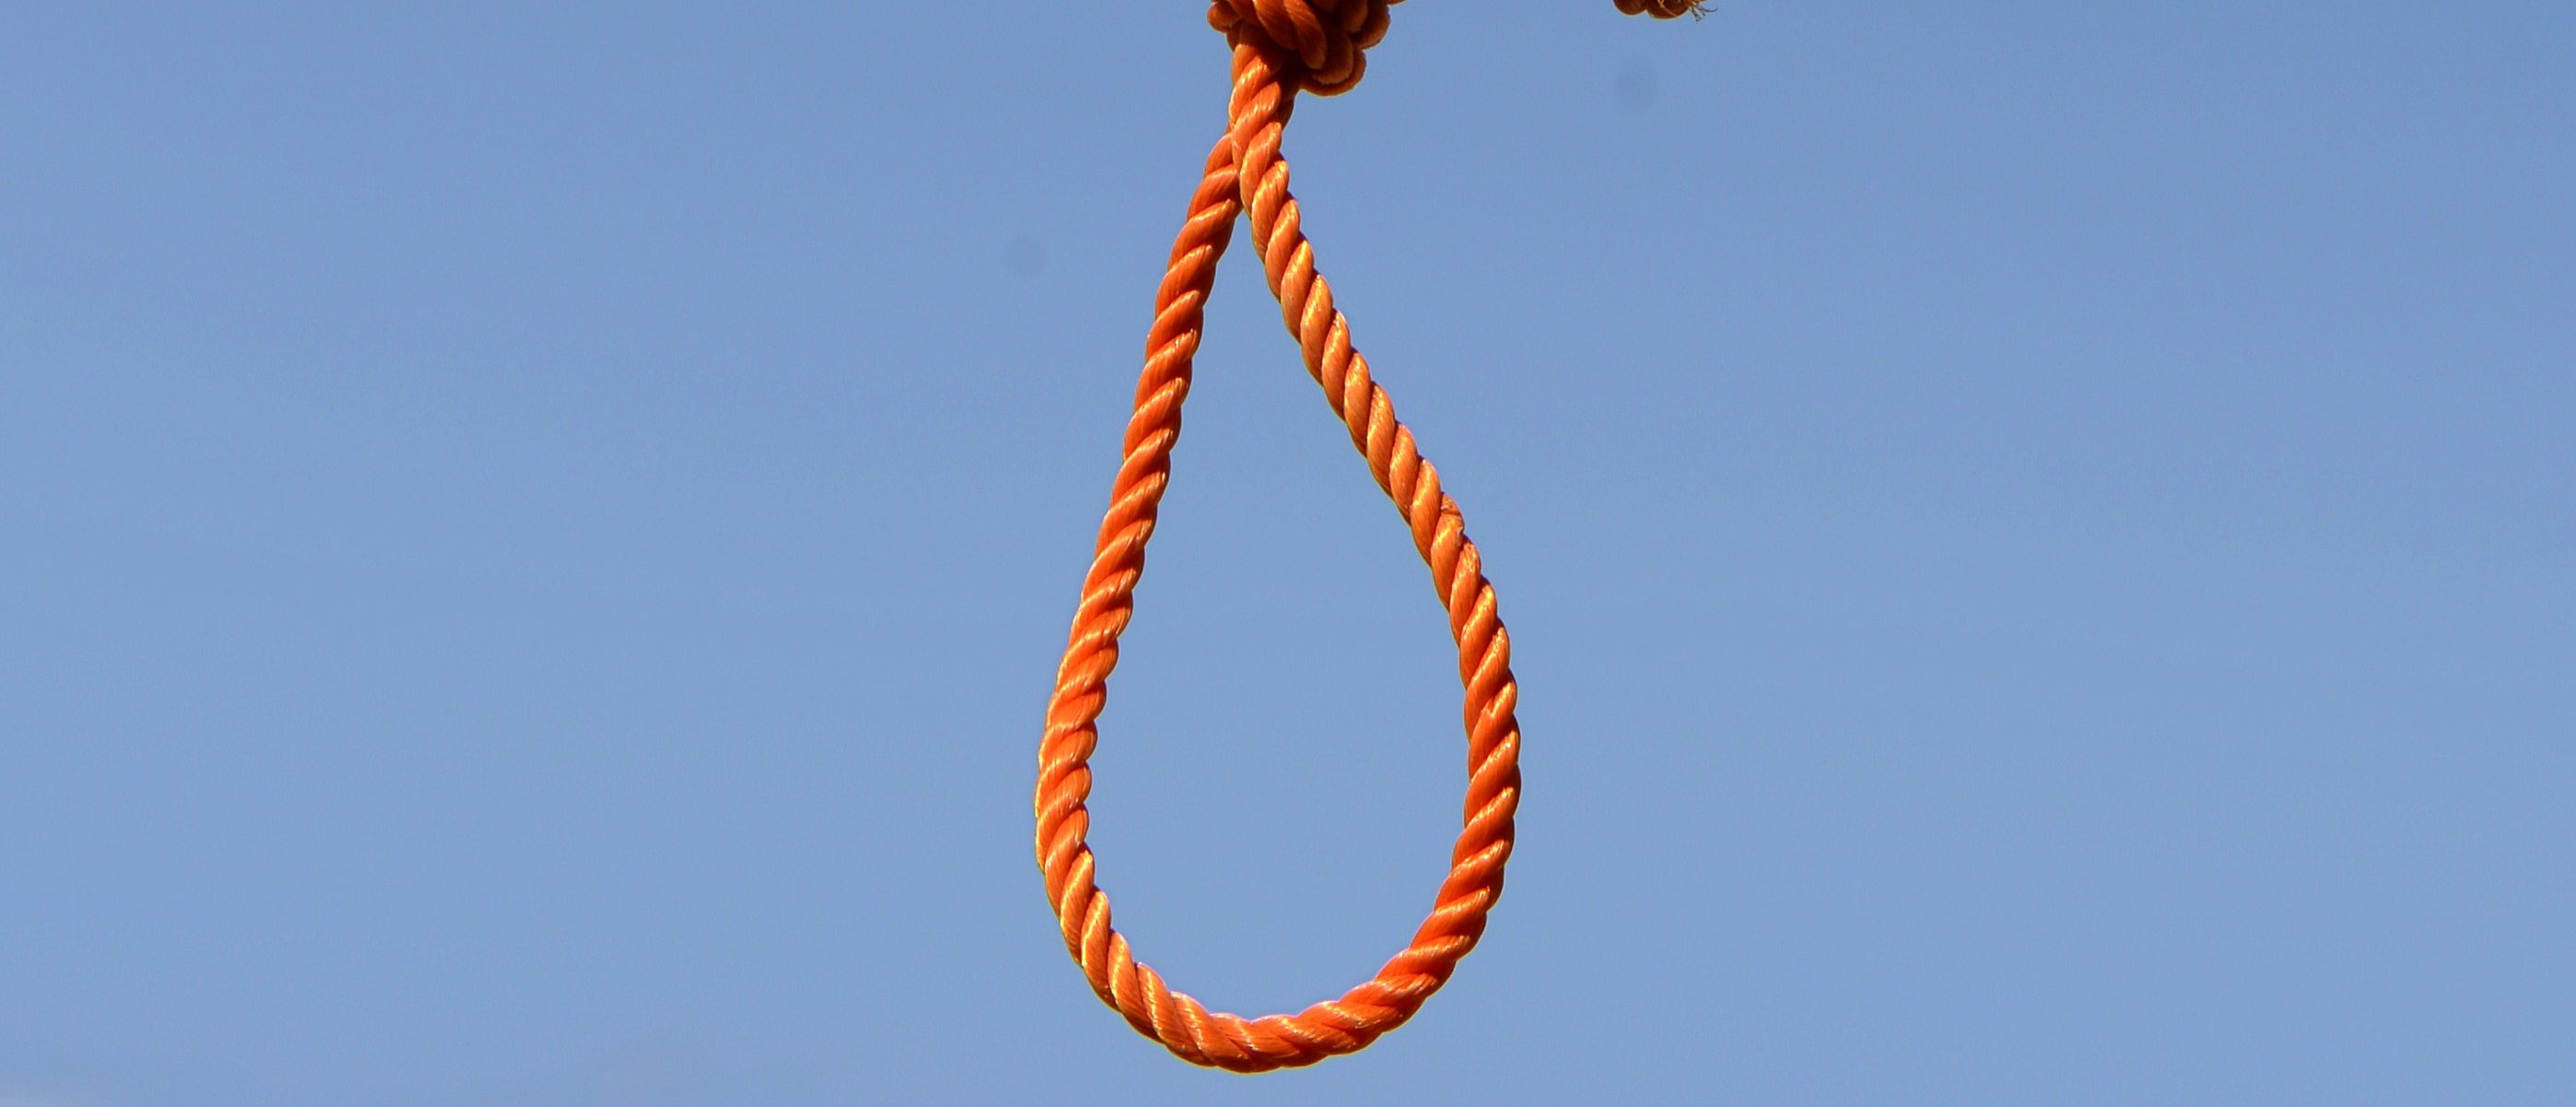 A noose hangs at Pul-e-Charkhi prison, on the outskirts of Kabul/ WAKIL KOHSAR/AFP/Getty Images